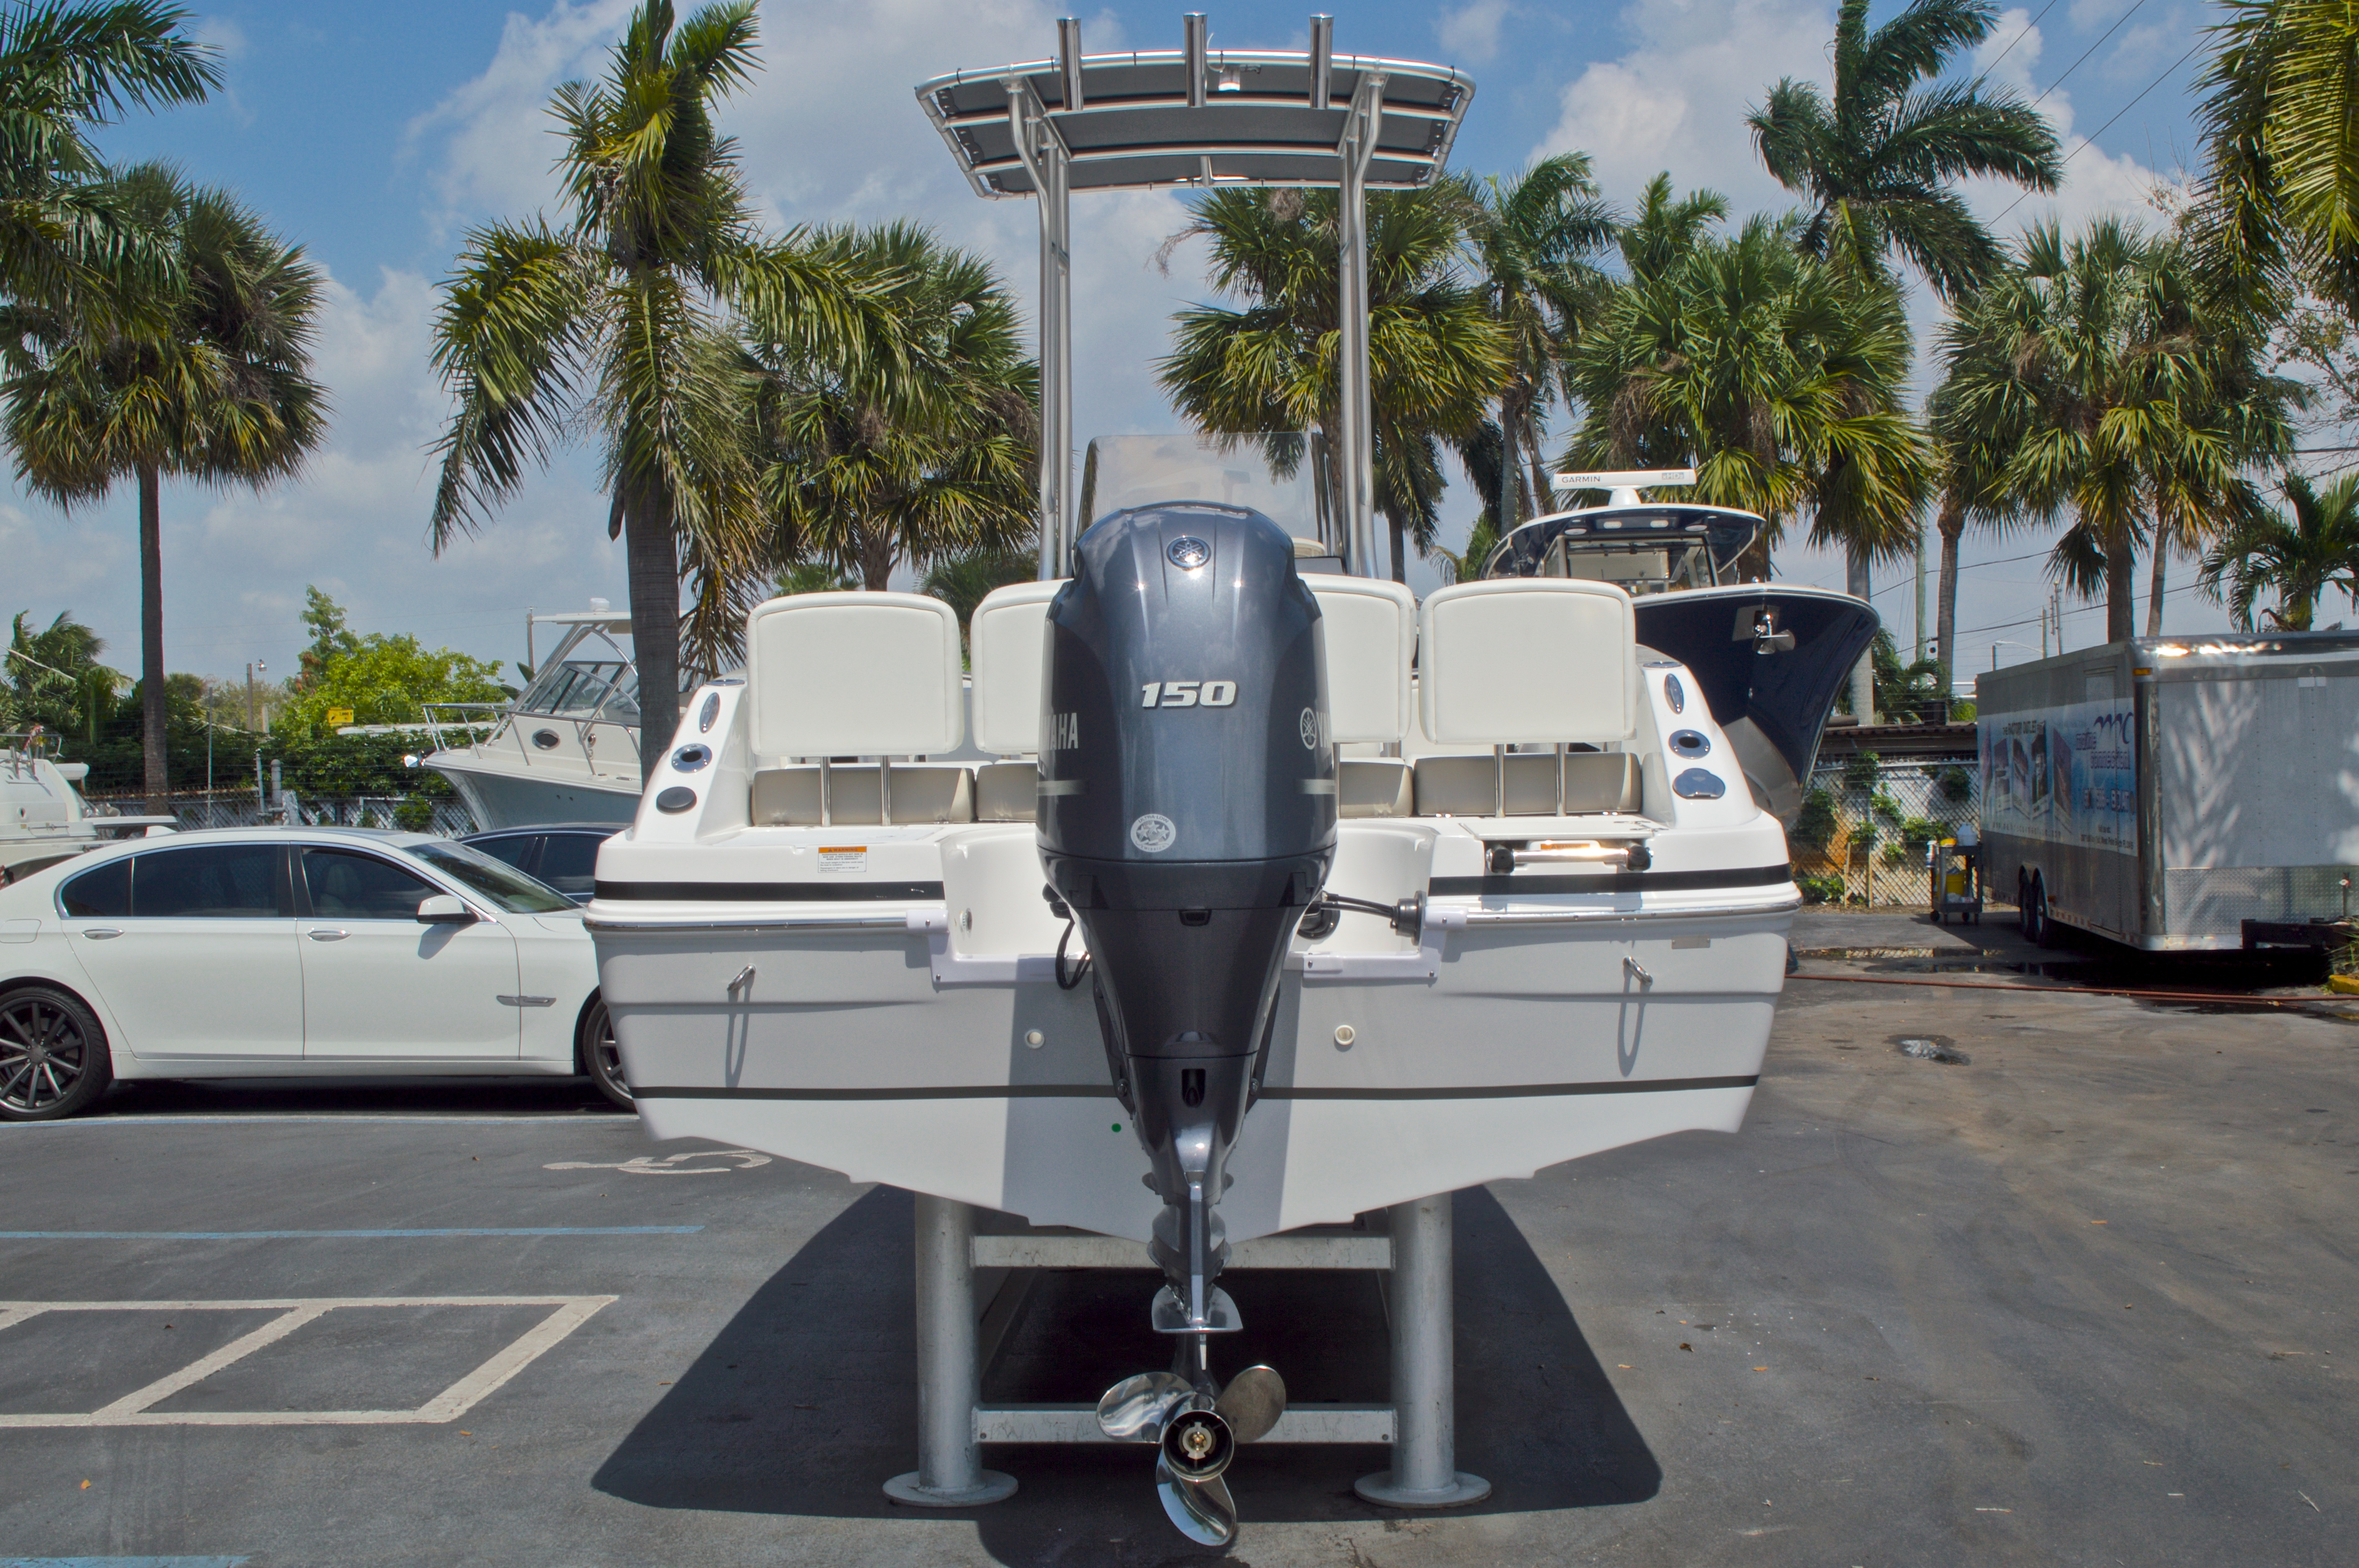 Thumbnail 7 for New 2016 Hurricane CC19 Center Console boat for sale in West Palm Beach, FL